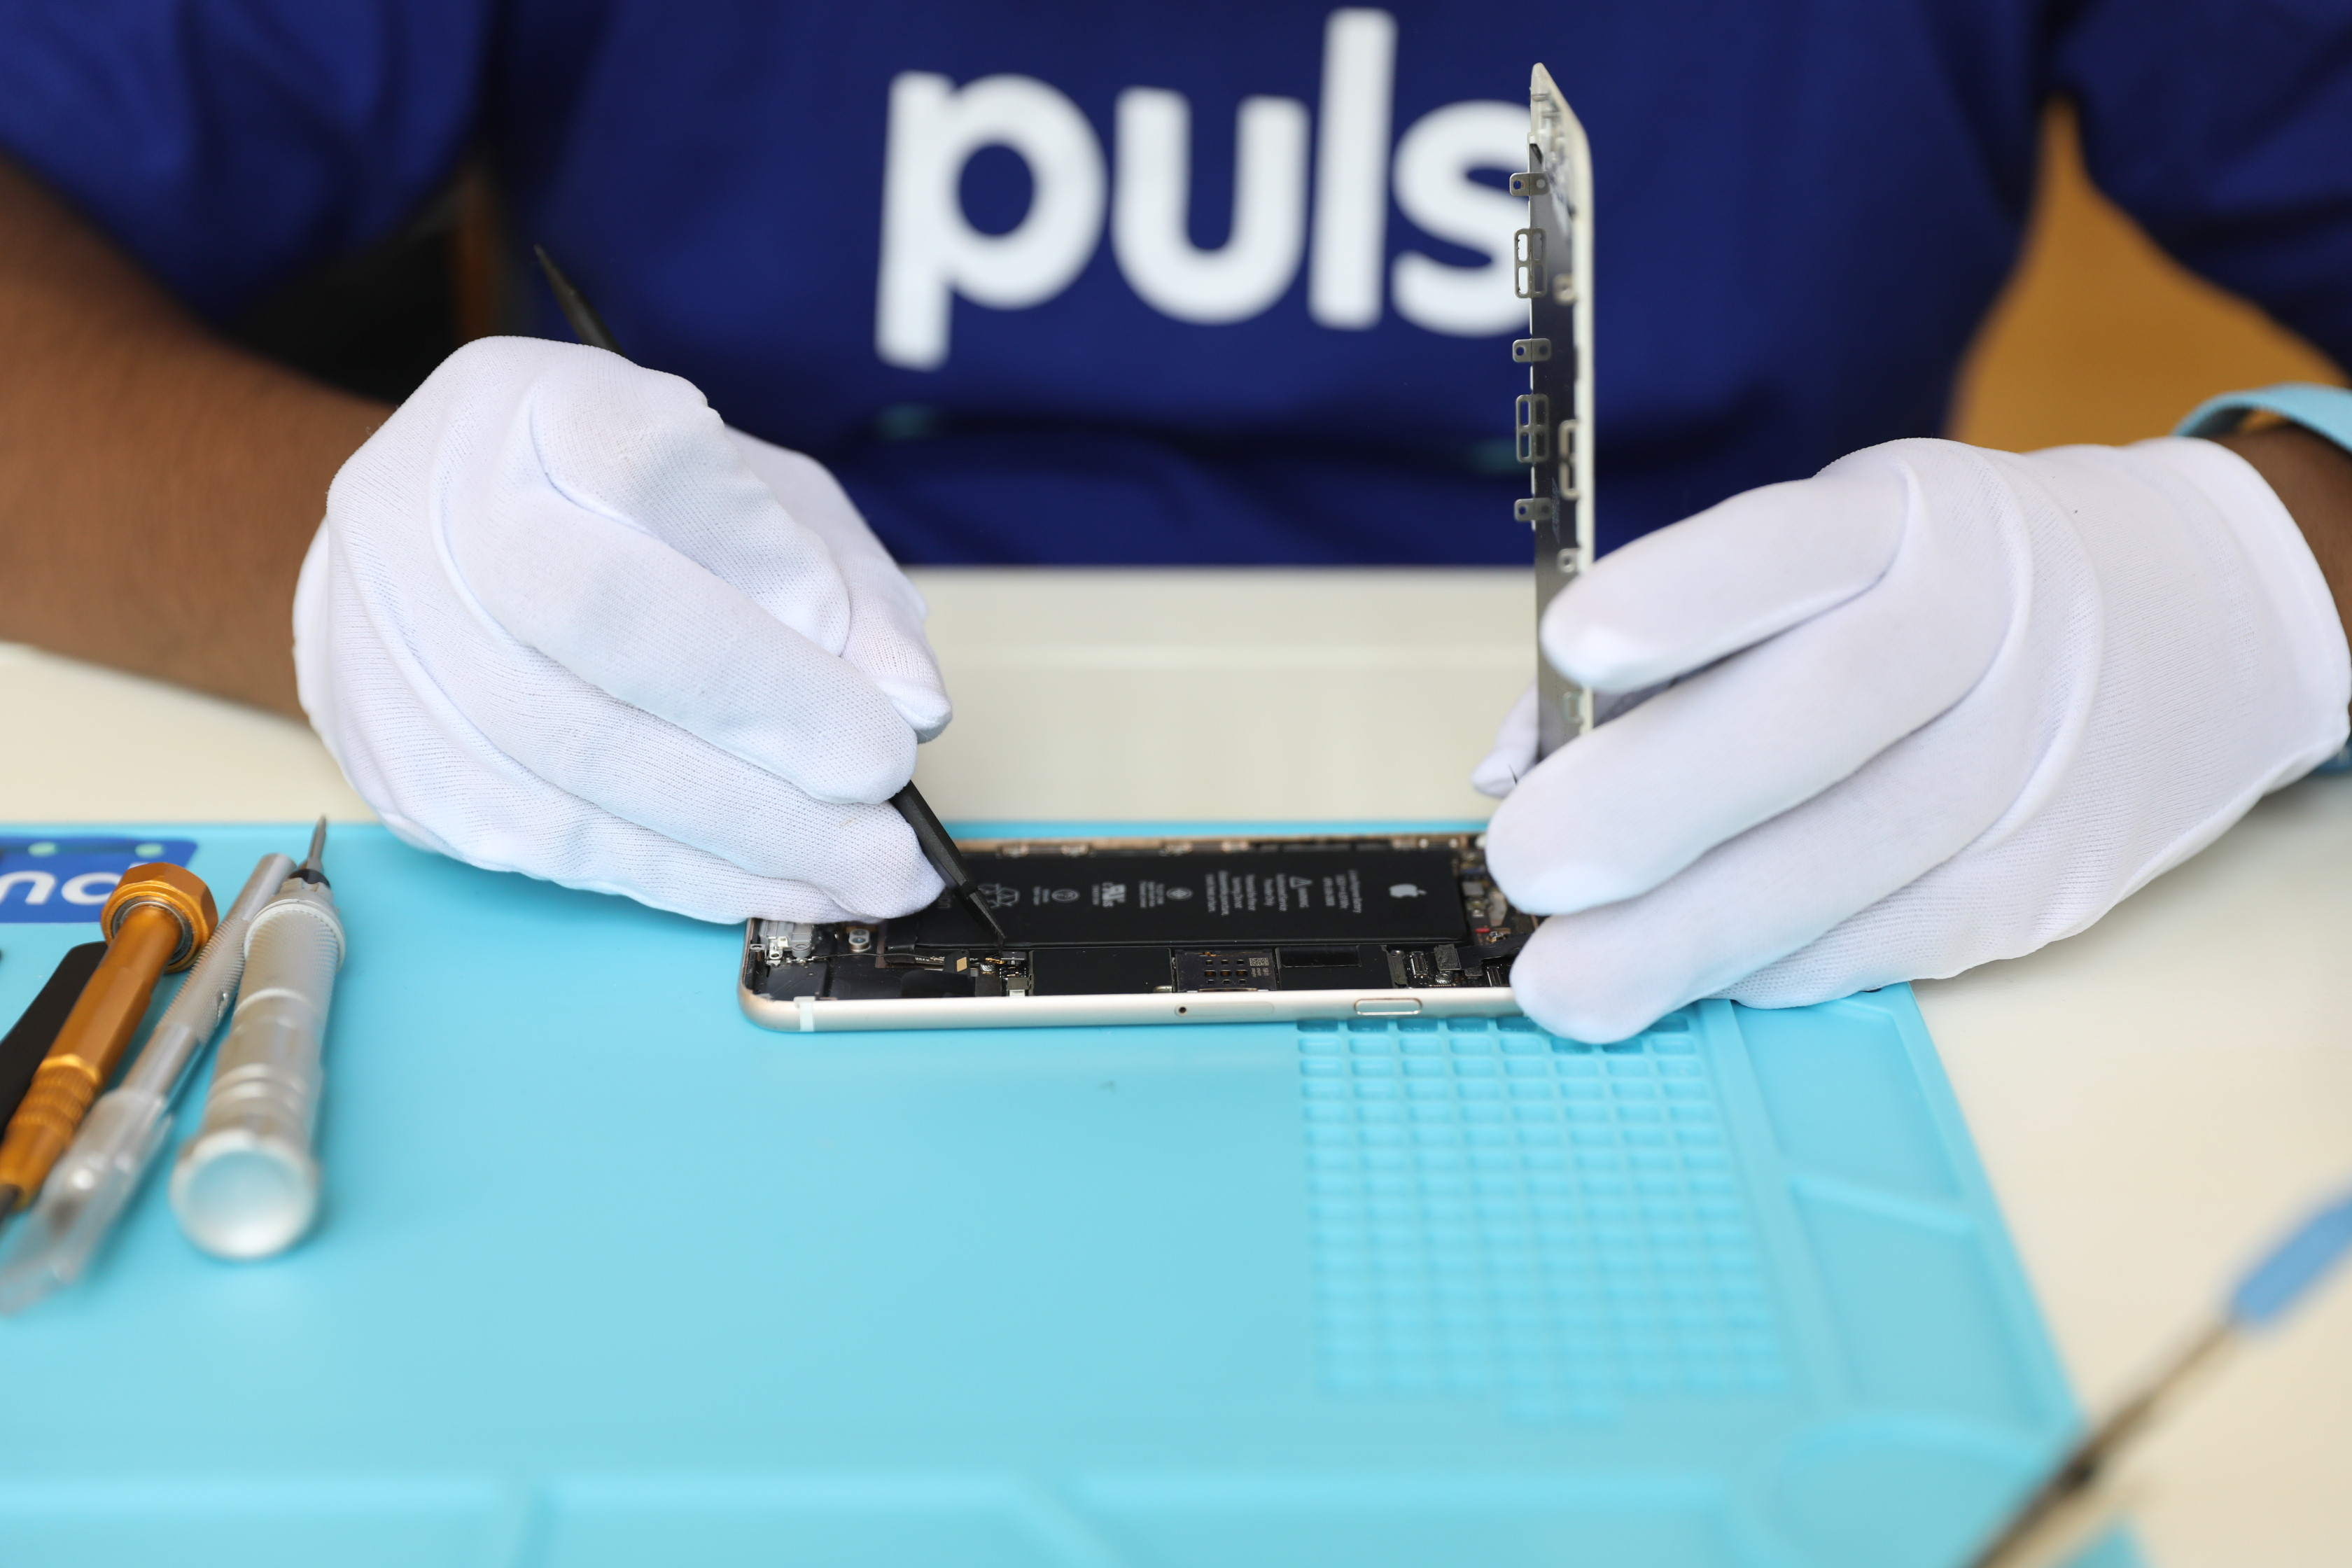 Puls iPhone repair